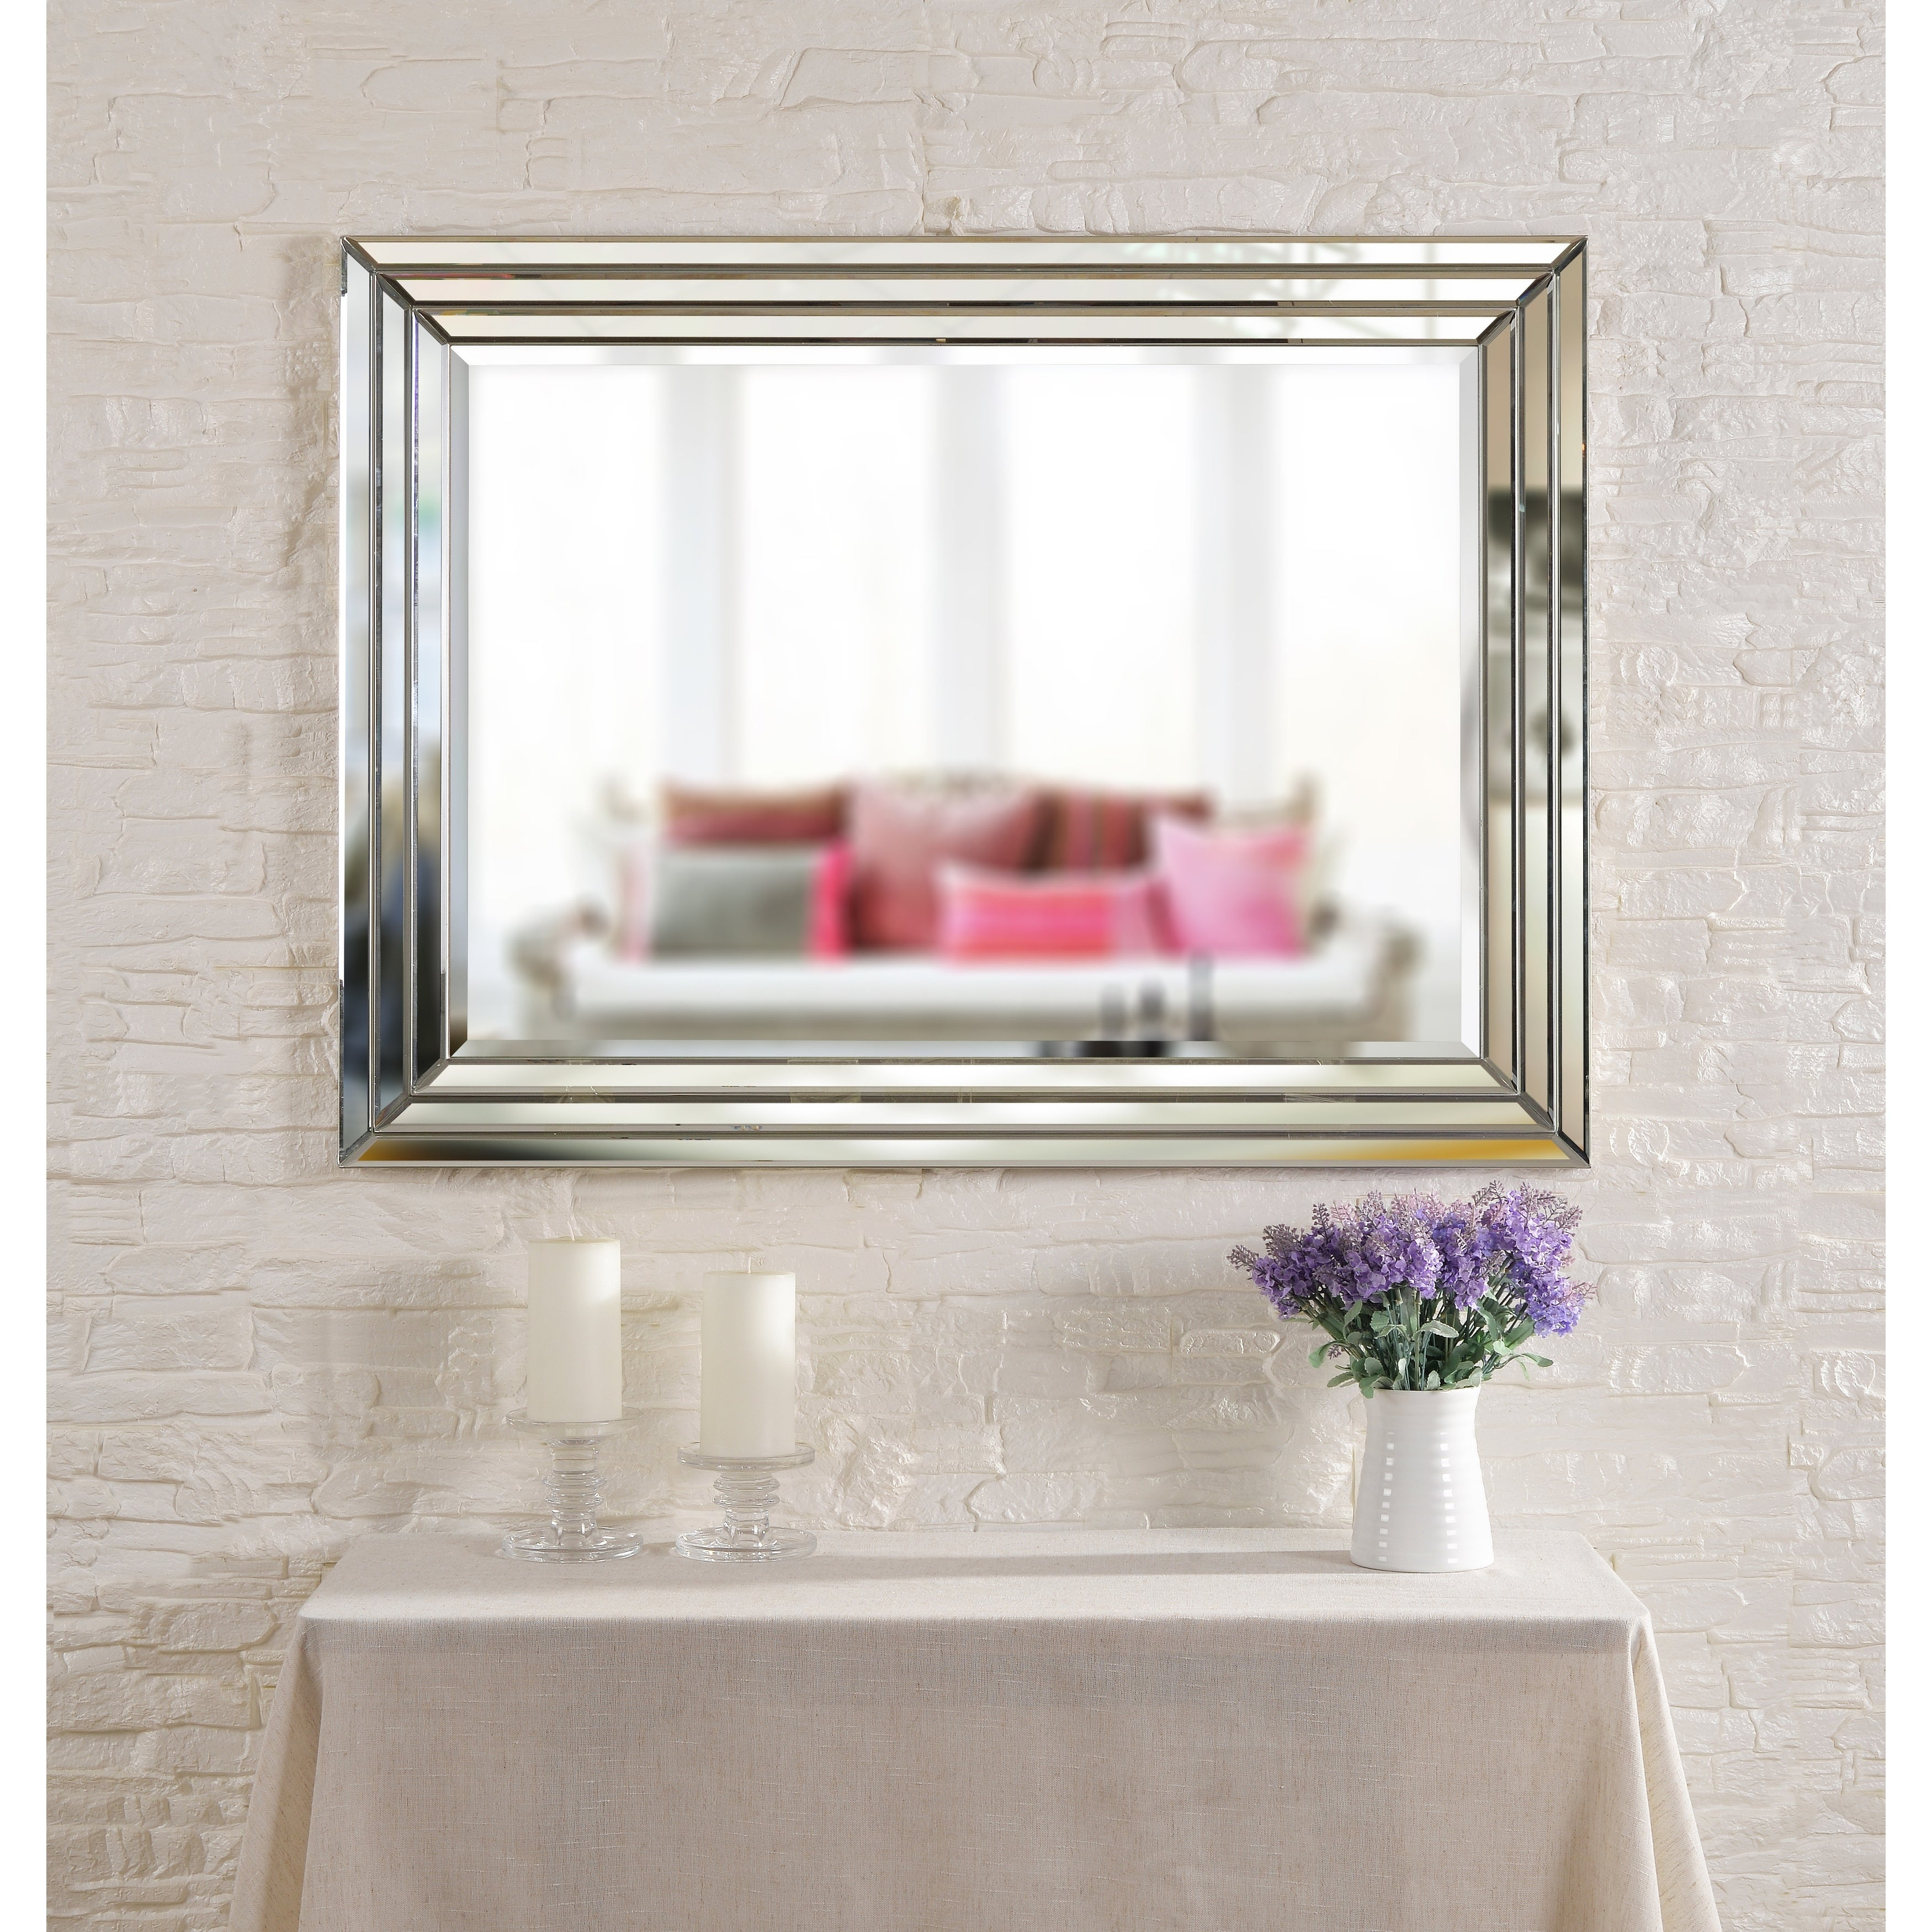 Buy Design Craft Mirrors Online at Overstock.com | Our Best ... on